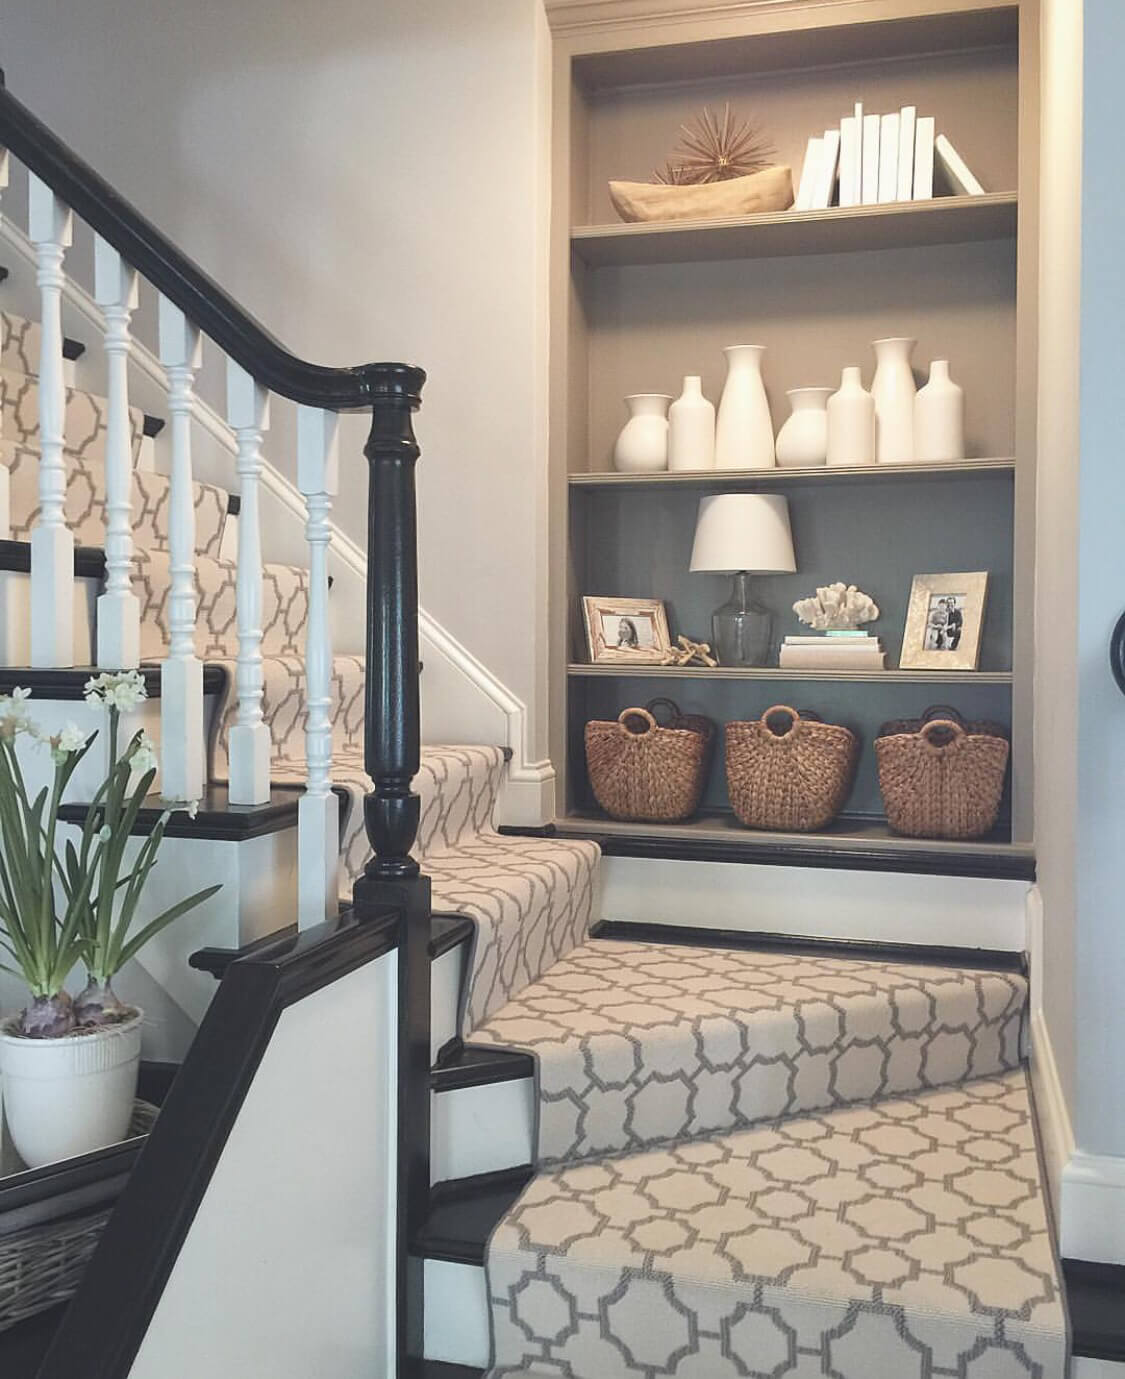 Basement Stair Landing Decorating: 28 Best Stairway Decorating Ideas And Designs For 2019